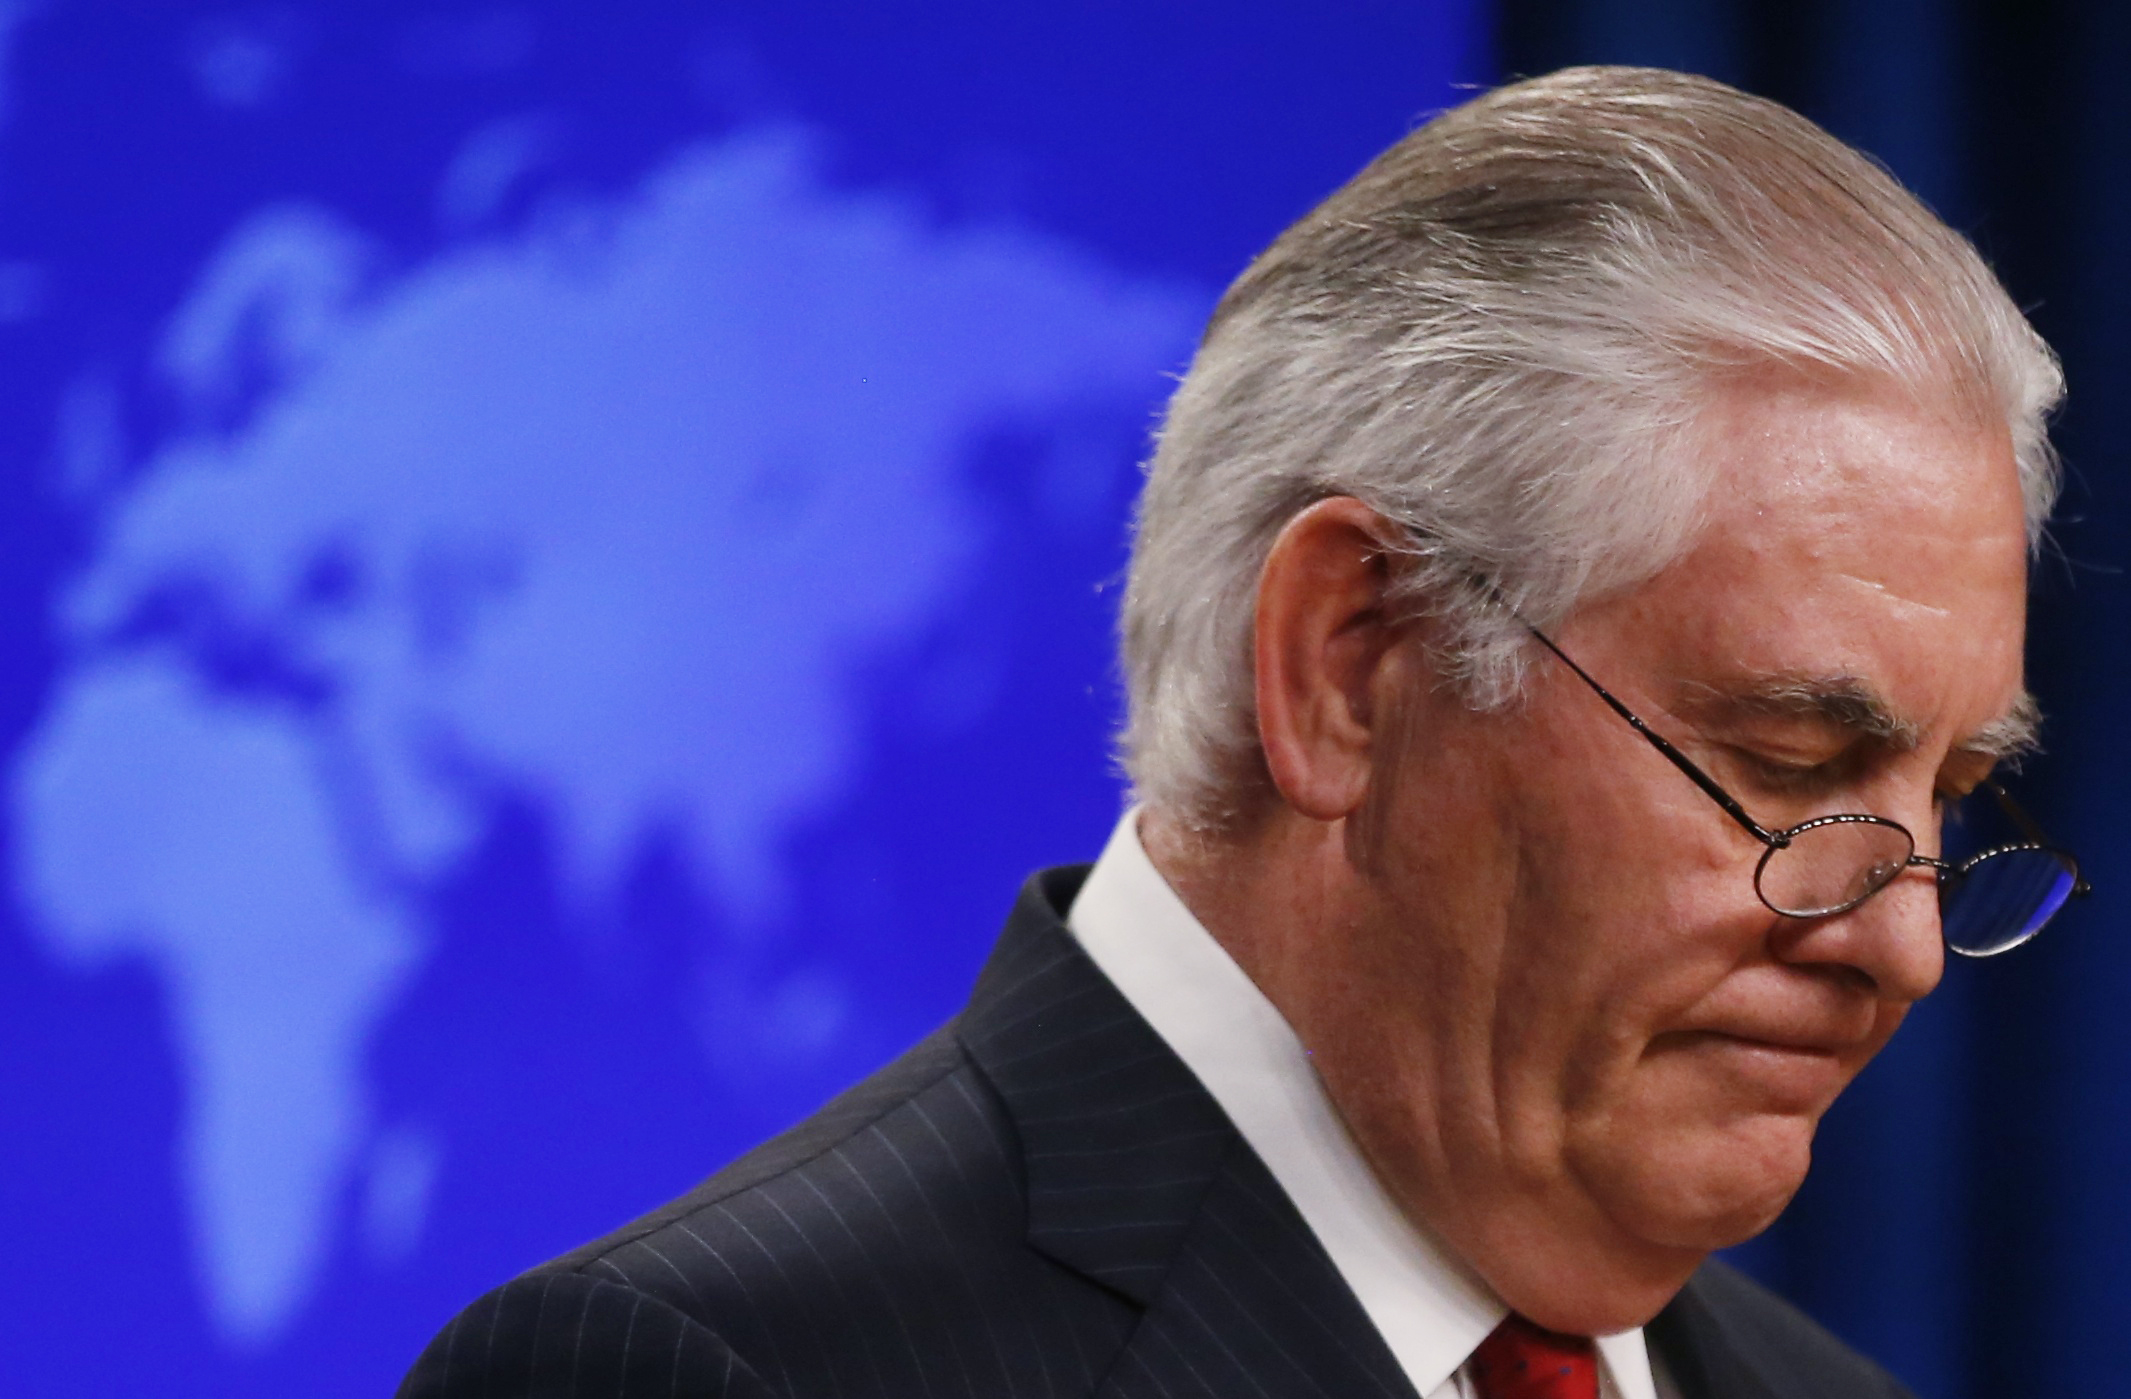 US Secretary of State Rex Tillerson speaks to the media at the US State Department after being fired by President Donald Trump